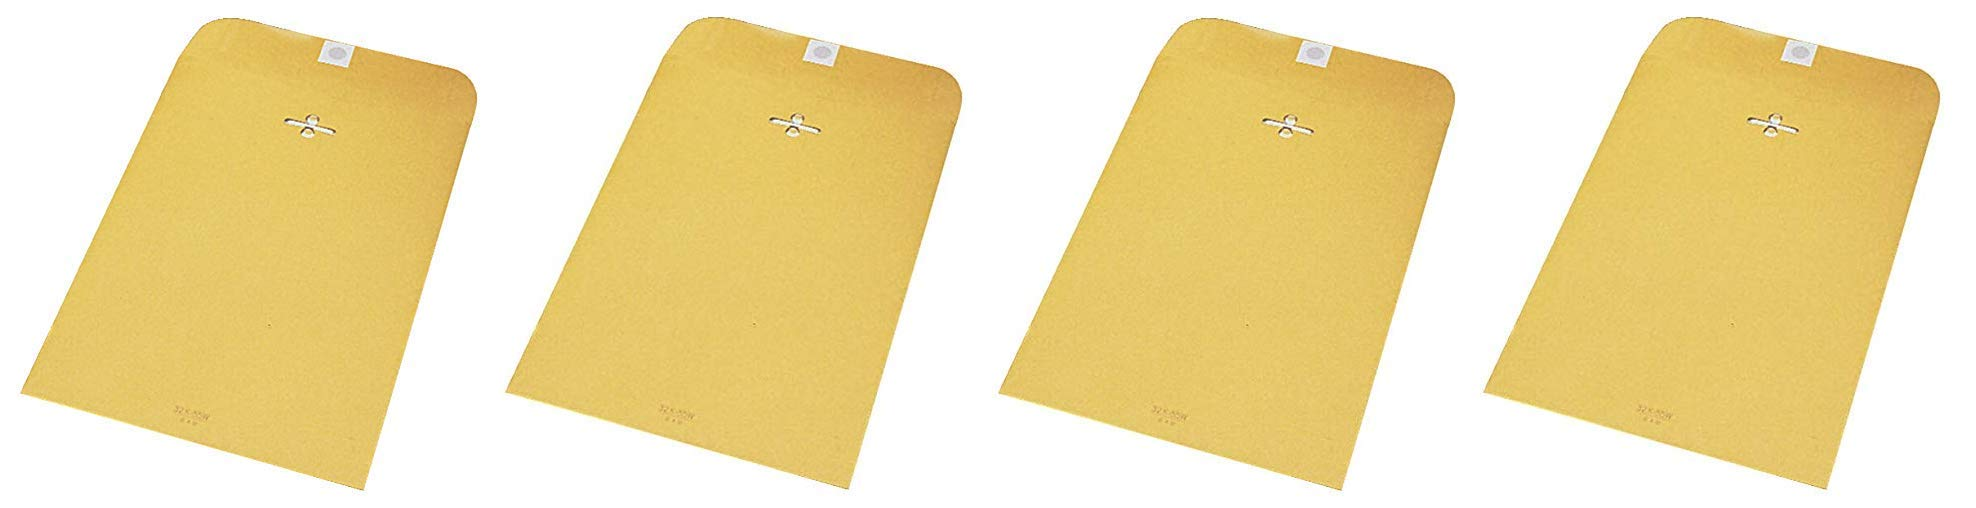 School Smart Kraft Envelope with Clasp, No 55, 6 x 9 Inches, Pack of 100 (Fоur Paсk) by School Smart